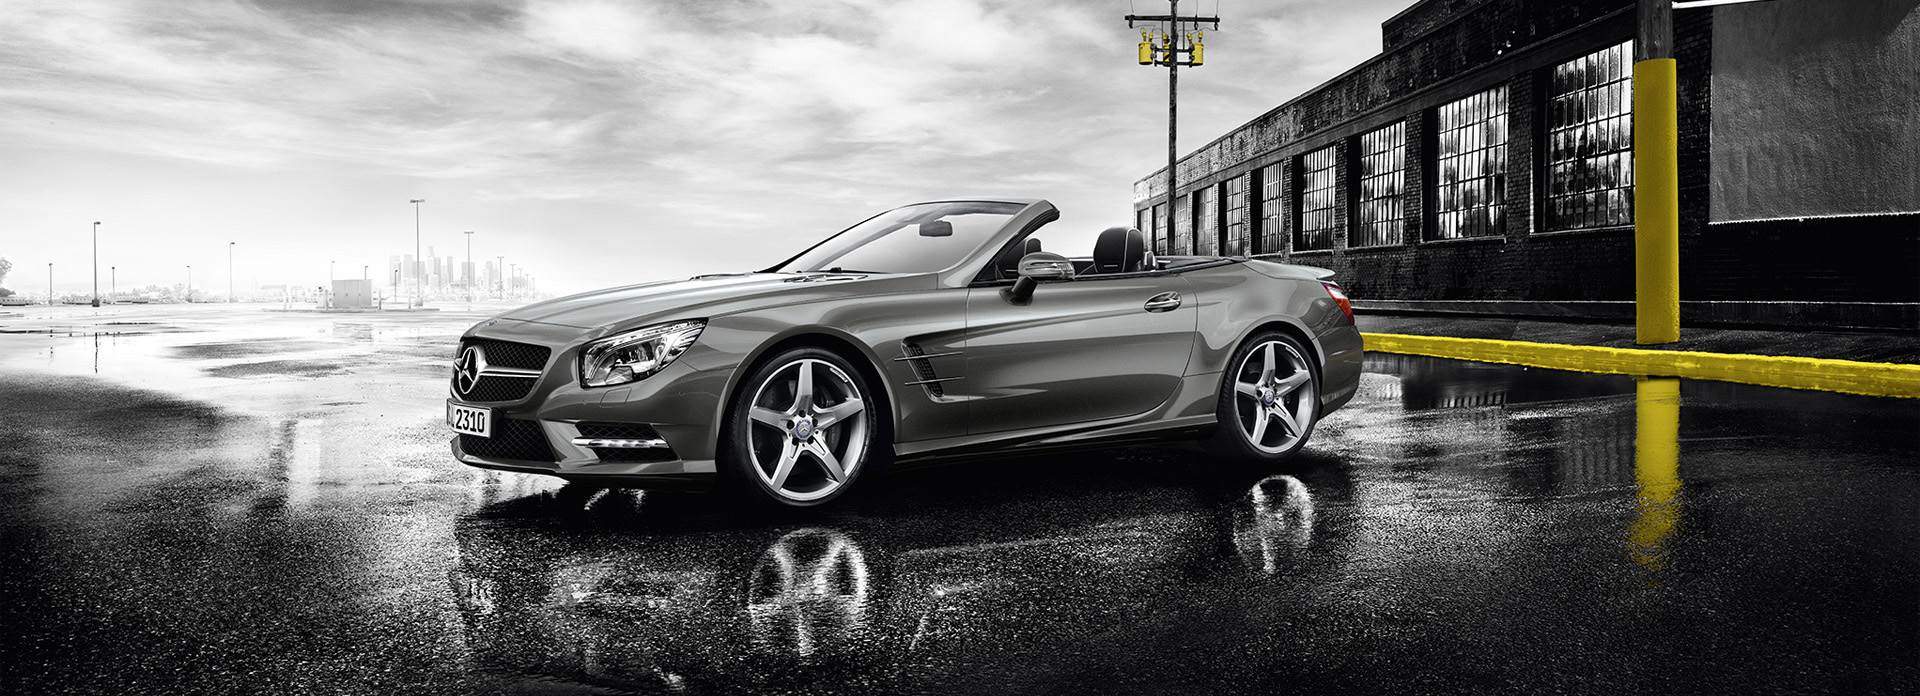 New mercedes sl class belfast portadown agnew group for Mercedes benz new car deals